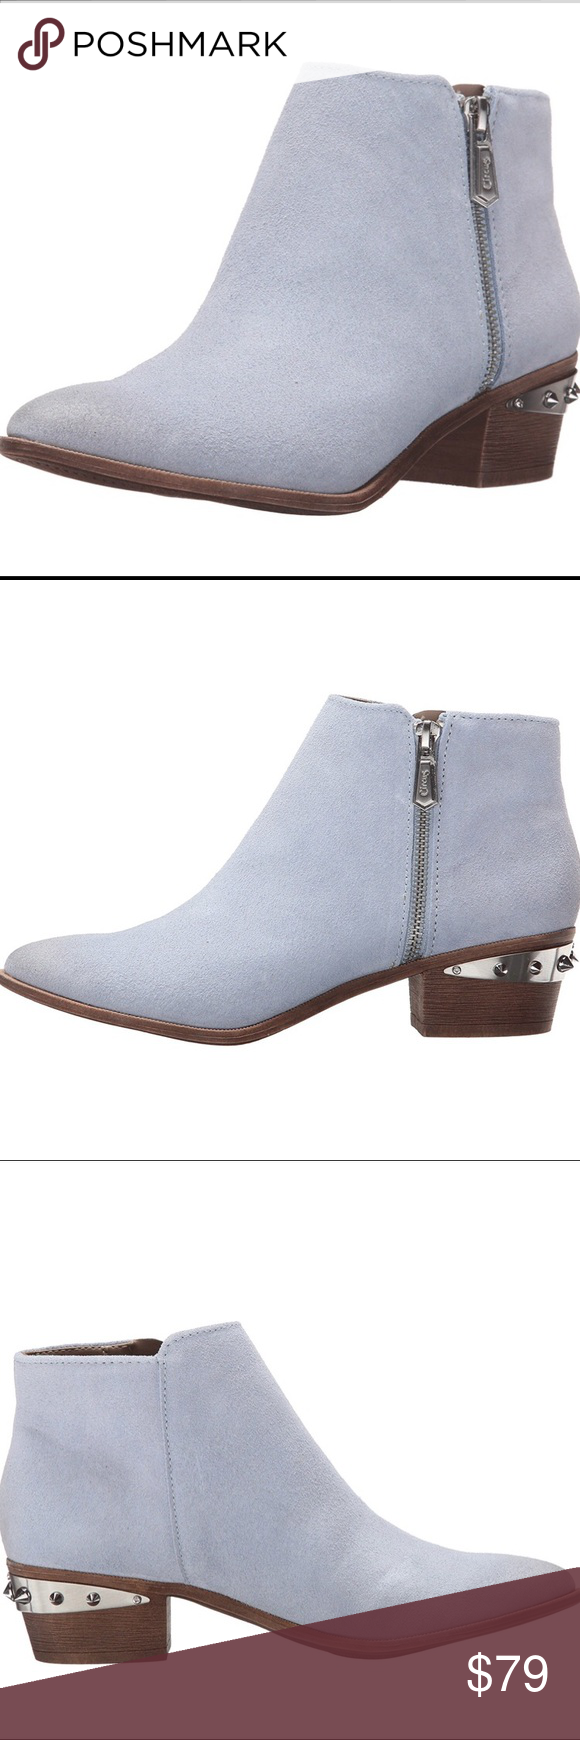 6b0f16311 Circus by Sam Edelman Holt booties